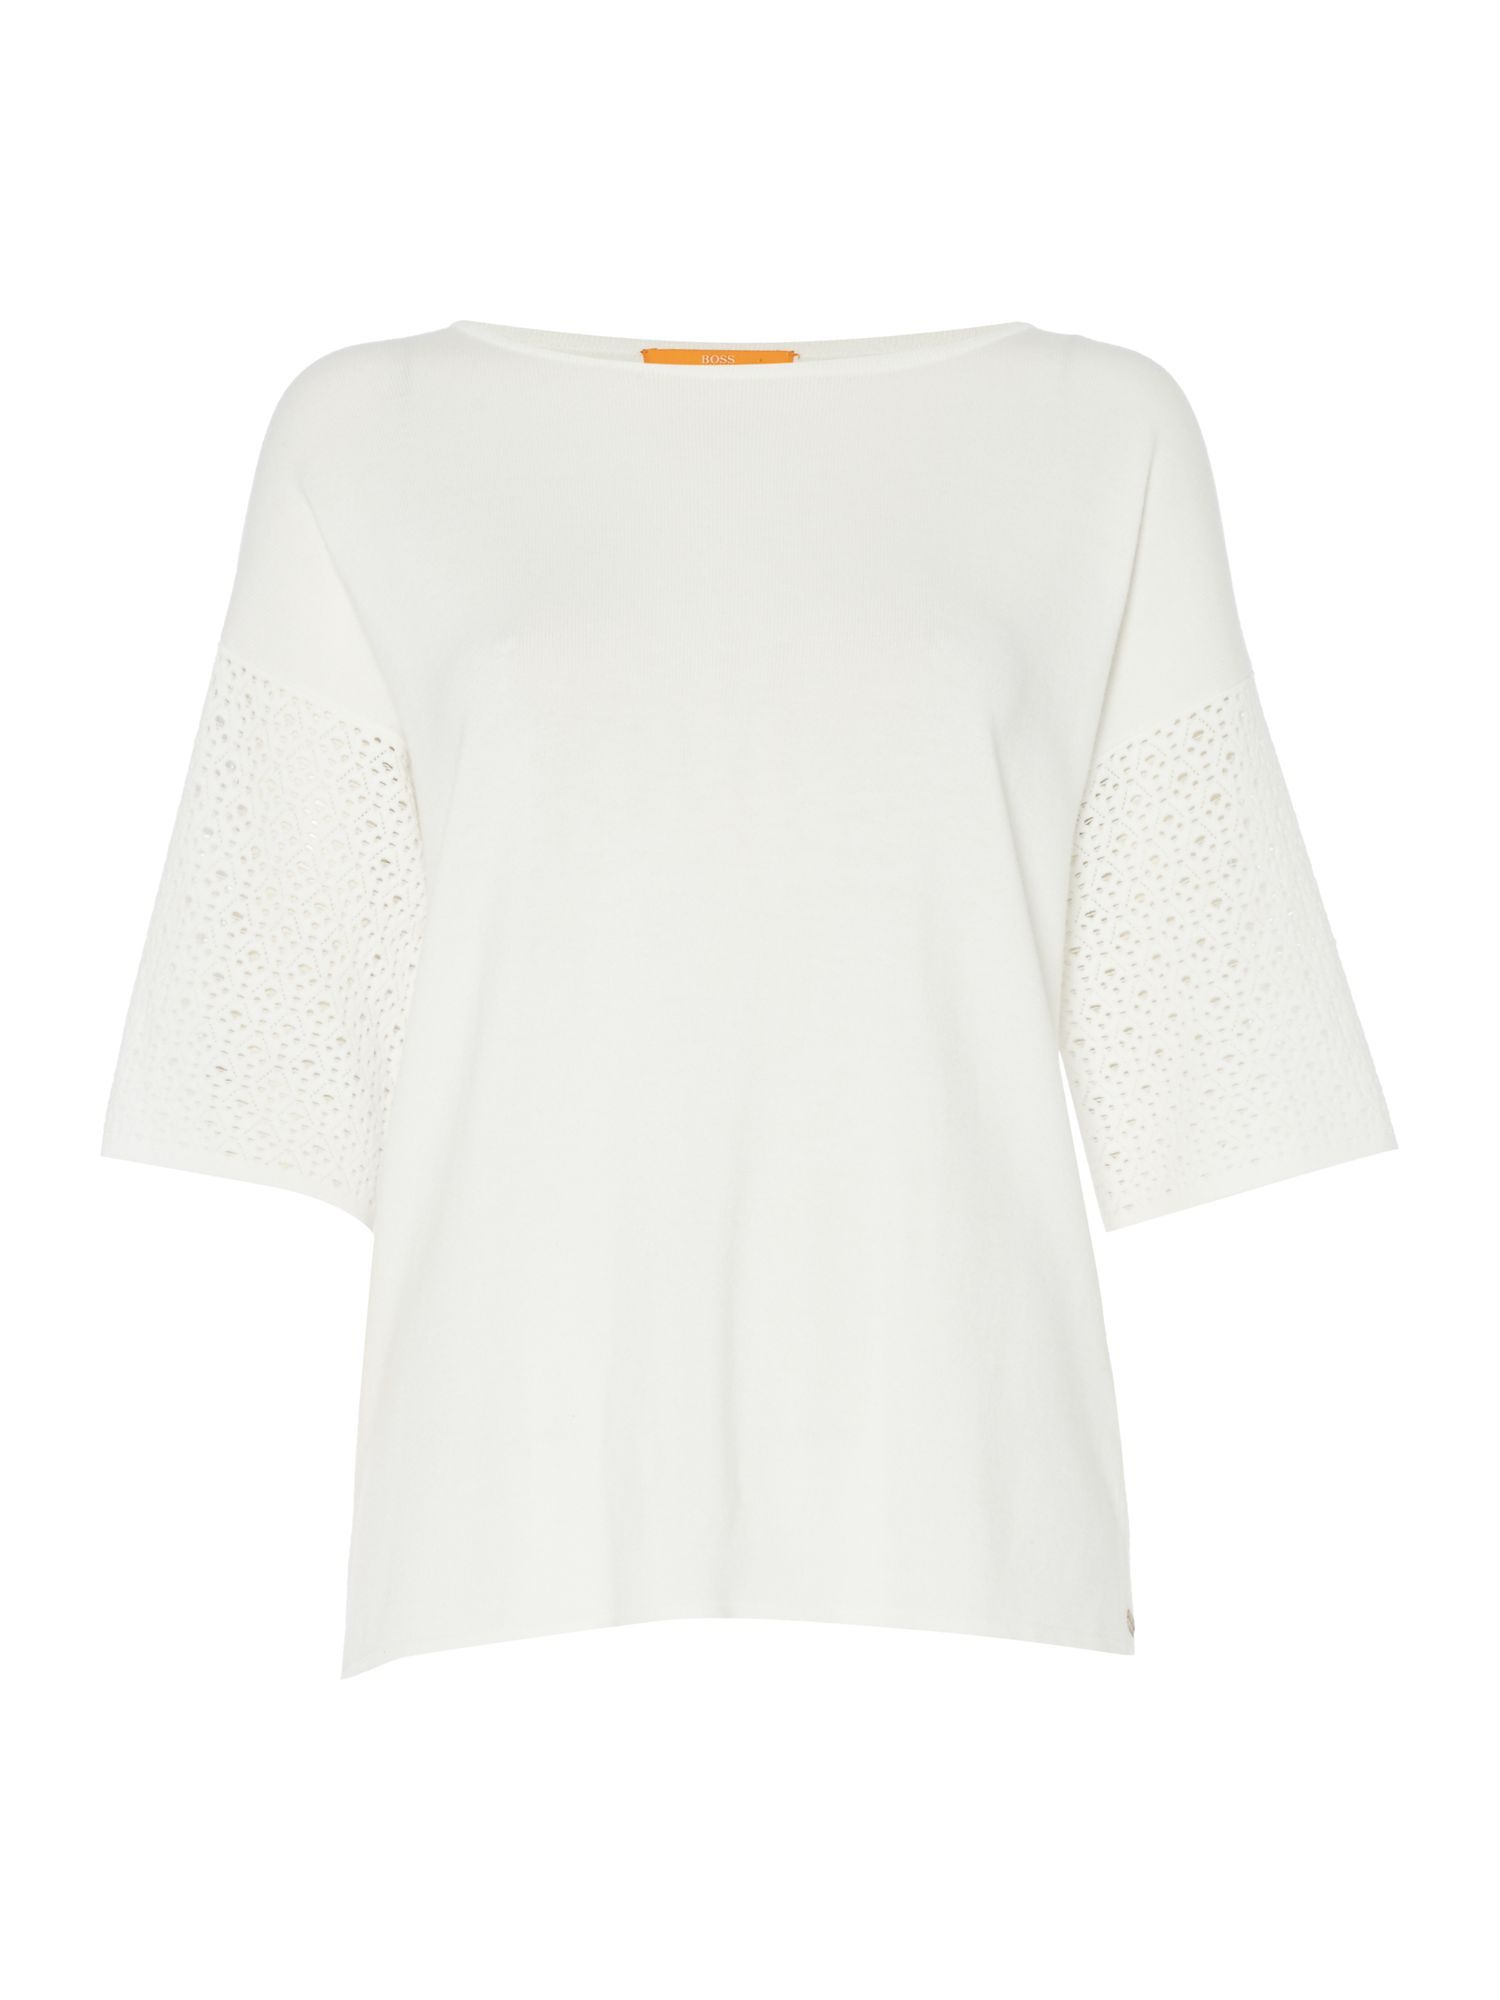 Hugo Boss Wittoria 3/4 sleeve woven knit top, White